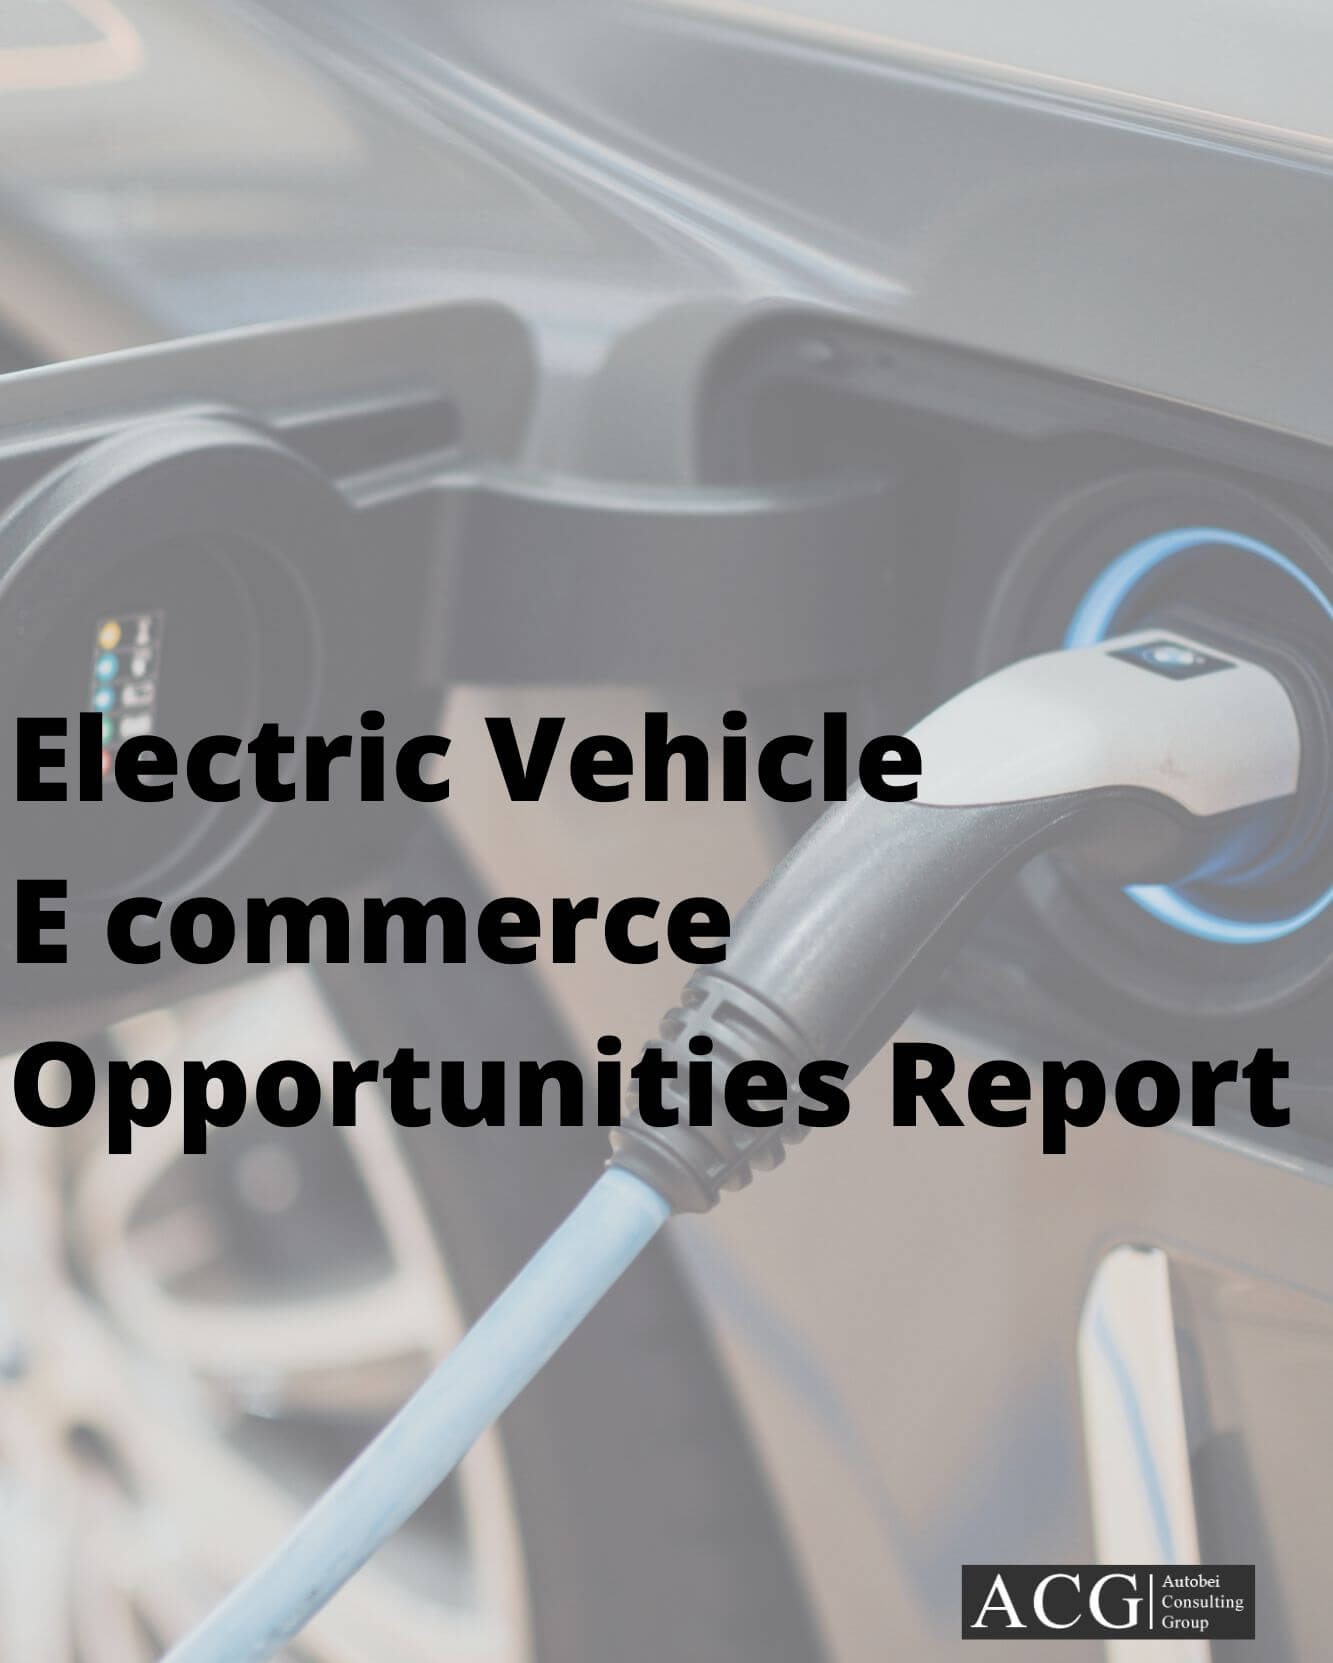 Electric Vehicle Ecommerce Opportunities Analysis